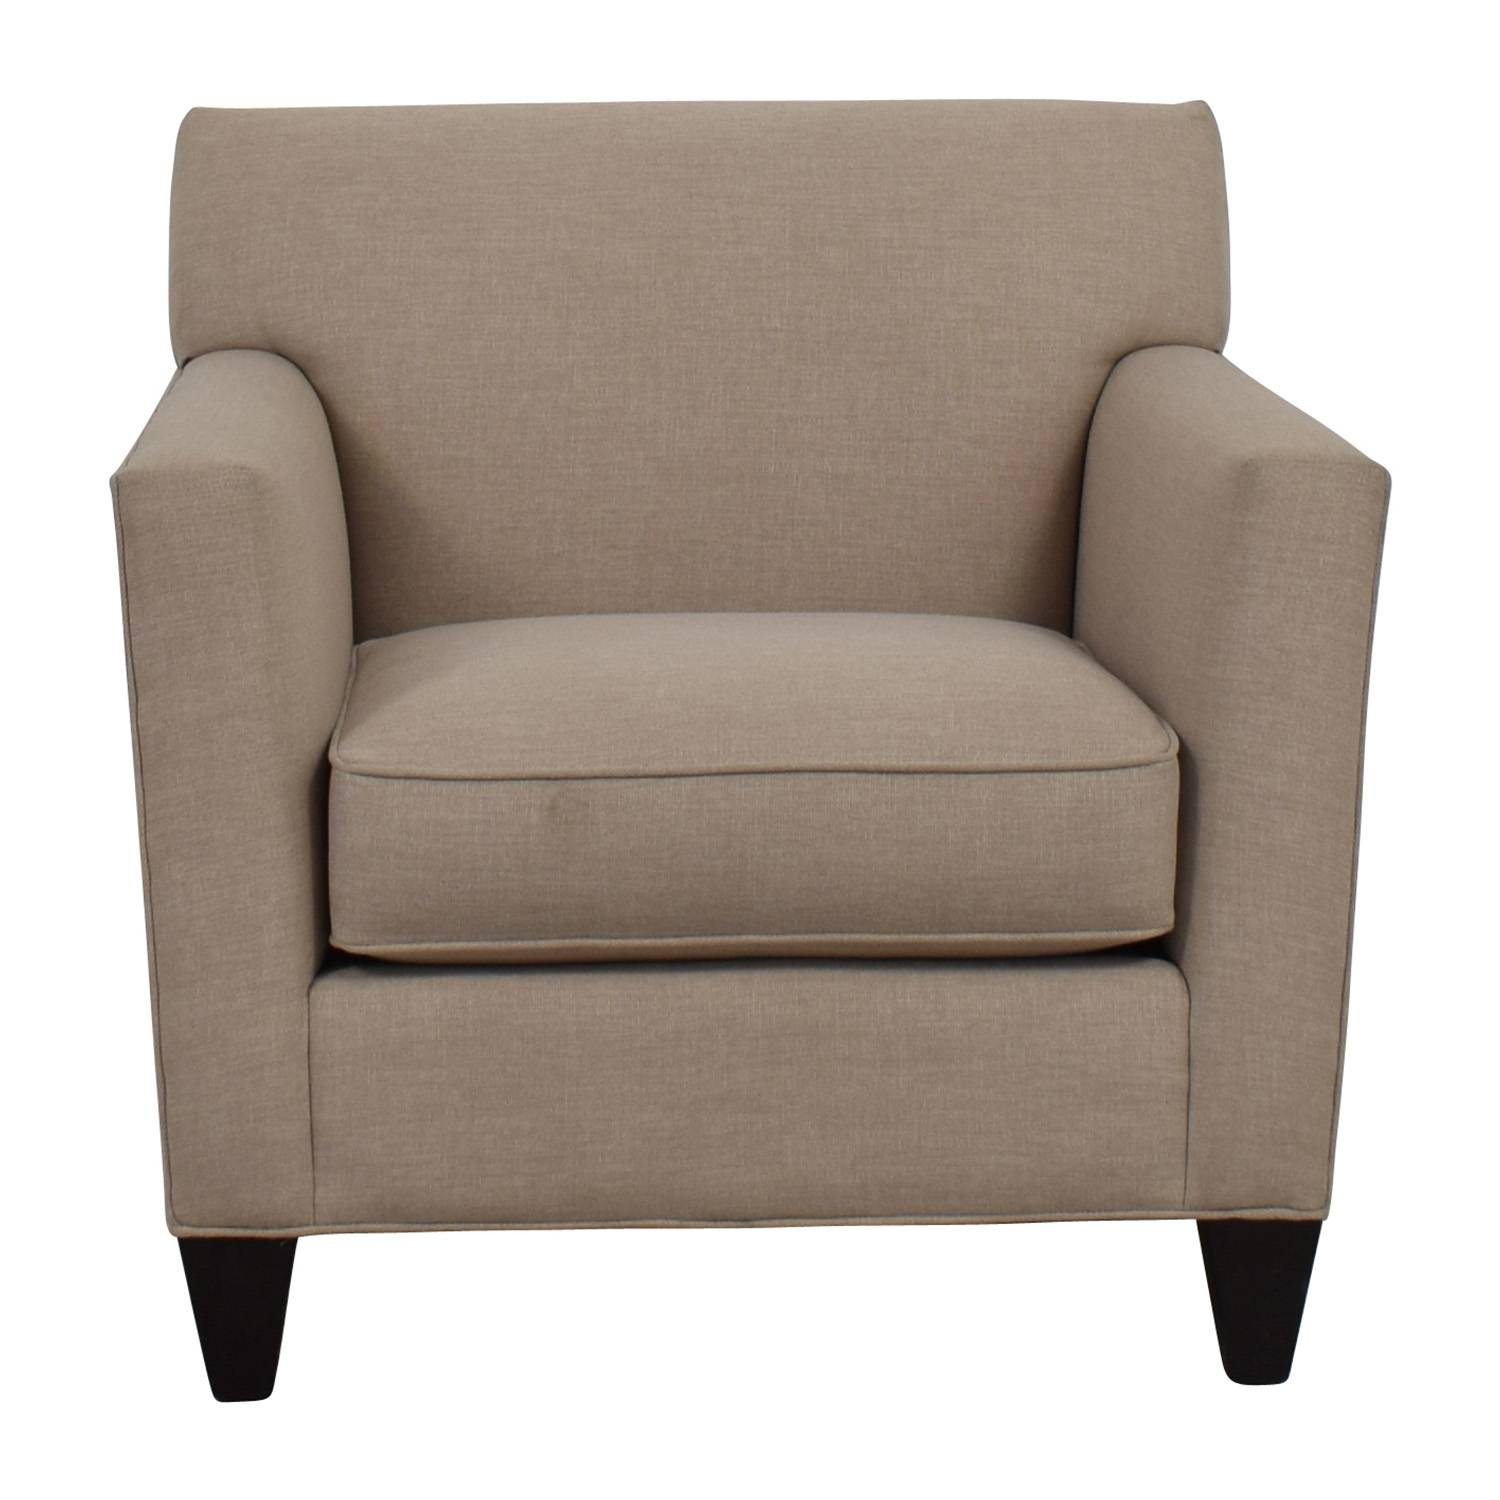 43% Off - Crate & Barrel Crate & Barrel Hennessy Sofa Chair / Chairs in Sofa Chairs (Image 3 of 30)